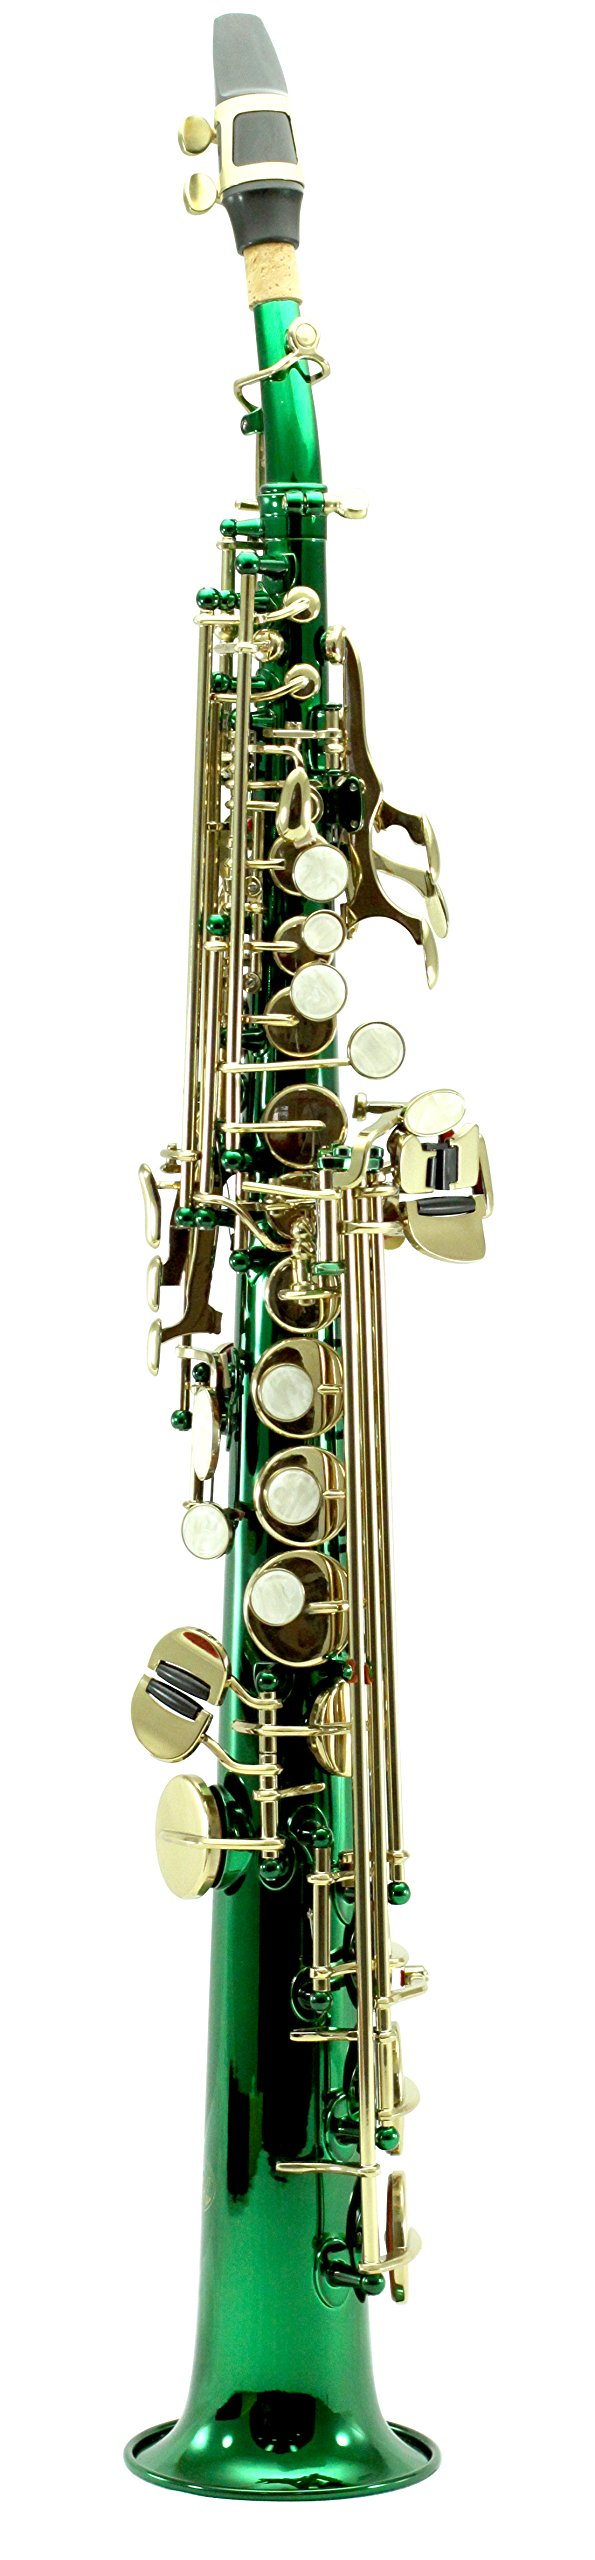 Sky Band Approved Bb Green Lacquered Soprano Saxophone with Lightweight Case, Gloves, Cleaning cloth and rod, Mouthpiece, Guarantee Top Quality Sound